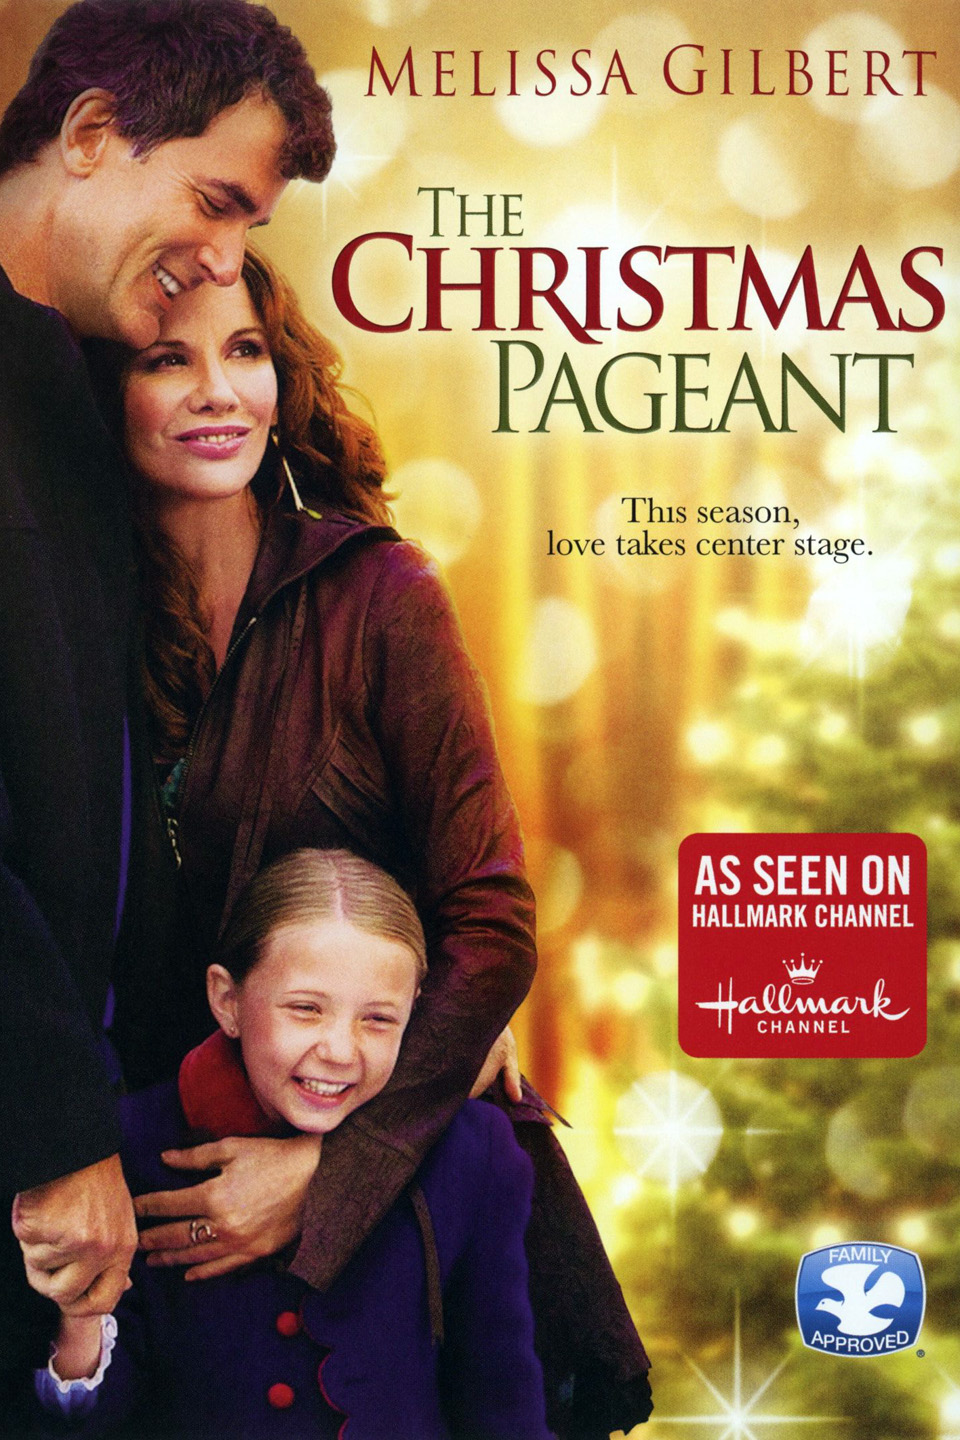 The Christmas Pageant (2011)